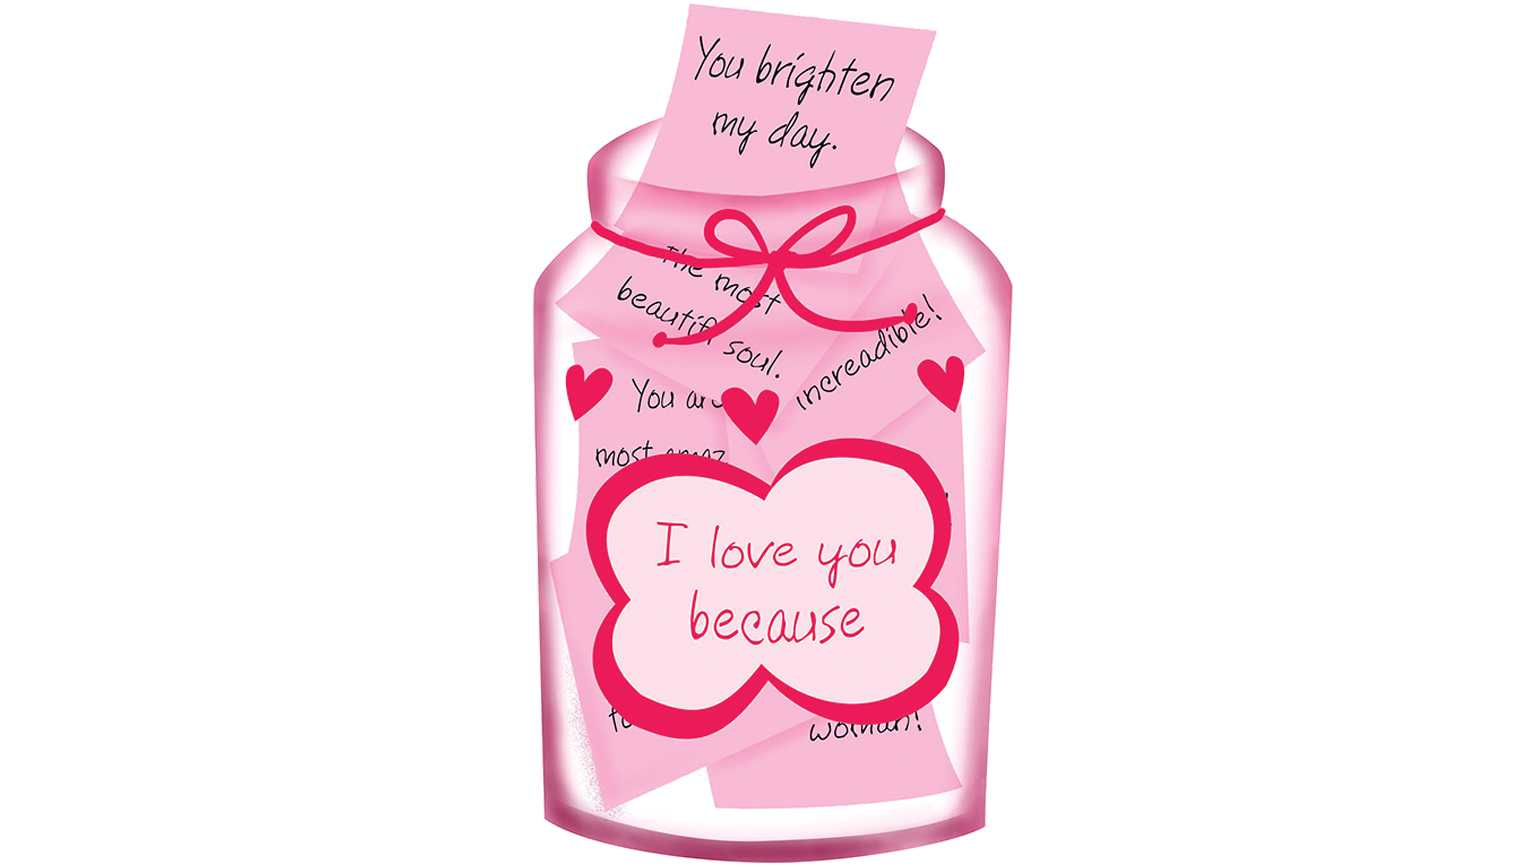 A jar full of pink notes of encouragement.